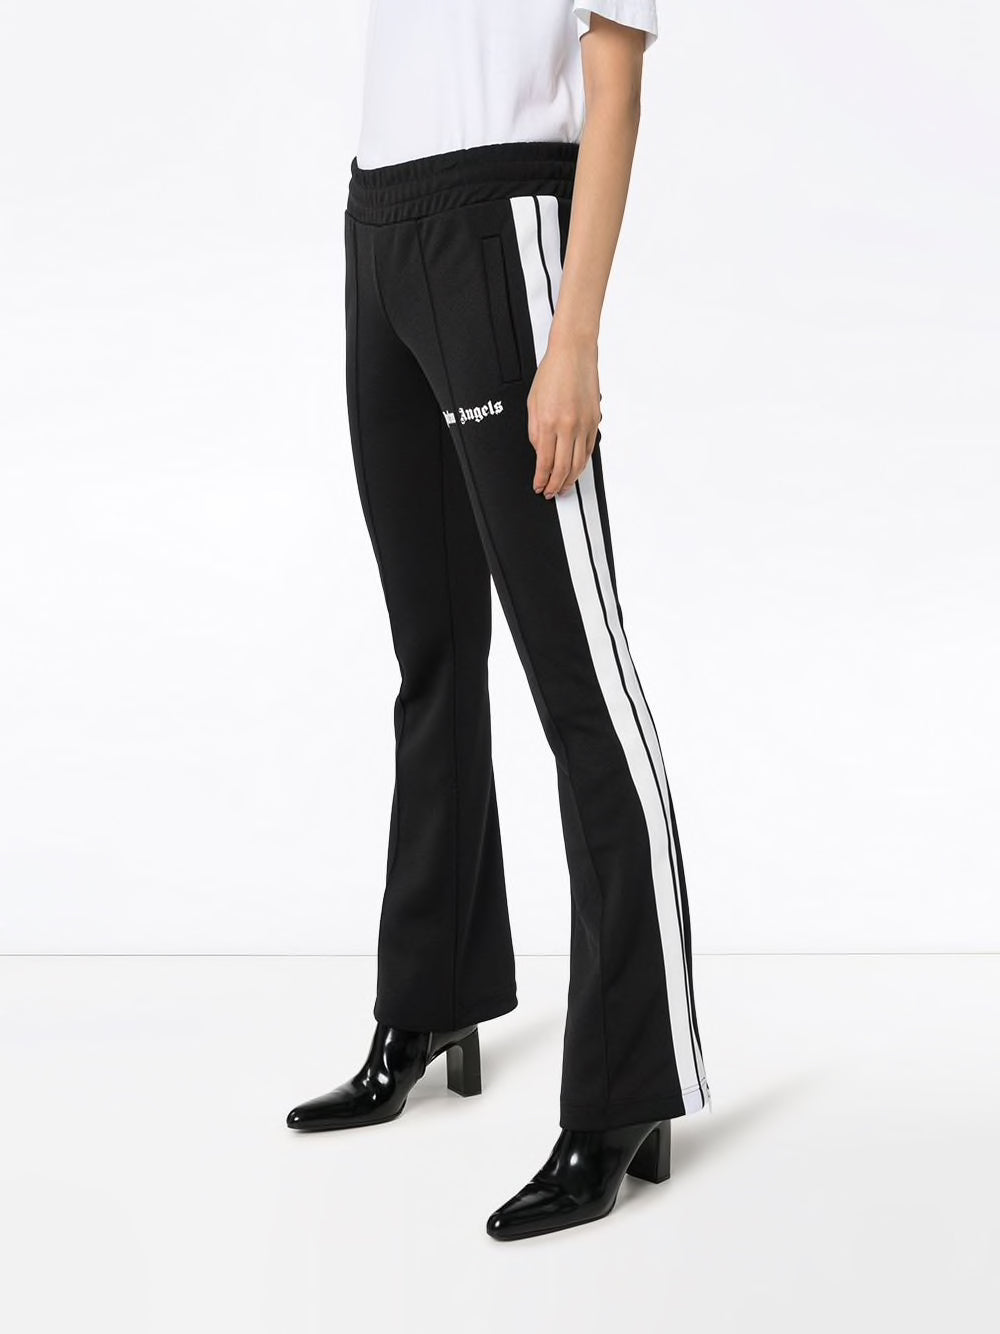 PALM ANGELS WOMEN NEW SKINNY TRACK PANTS